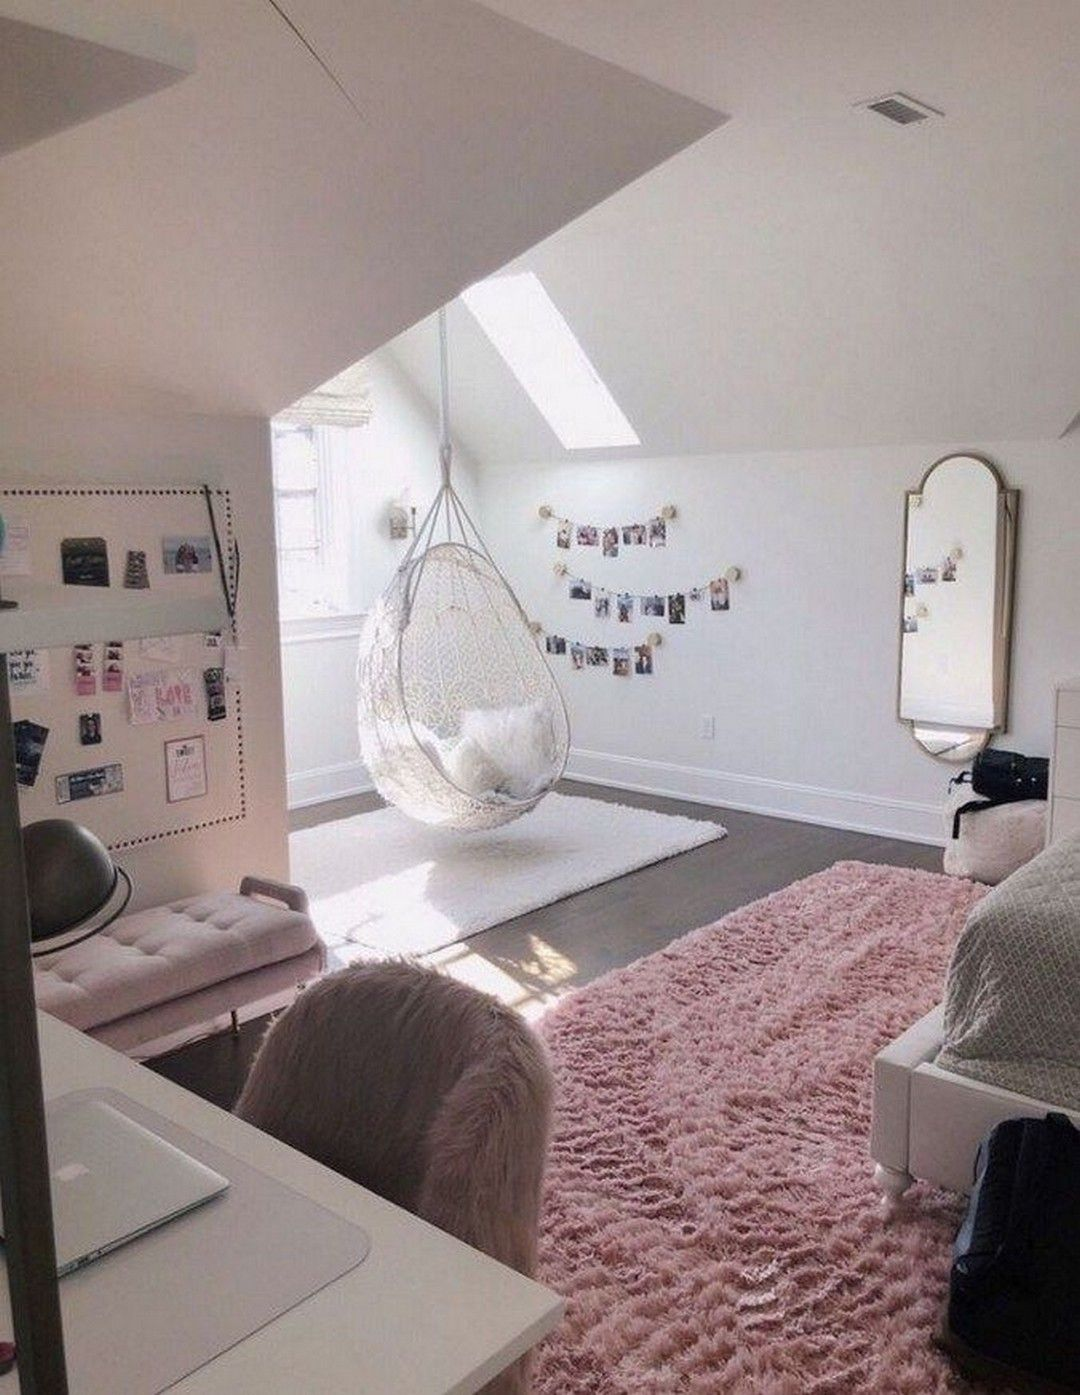 Best Small Bedroom Ideas to Make The Most of Your Space